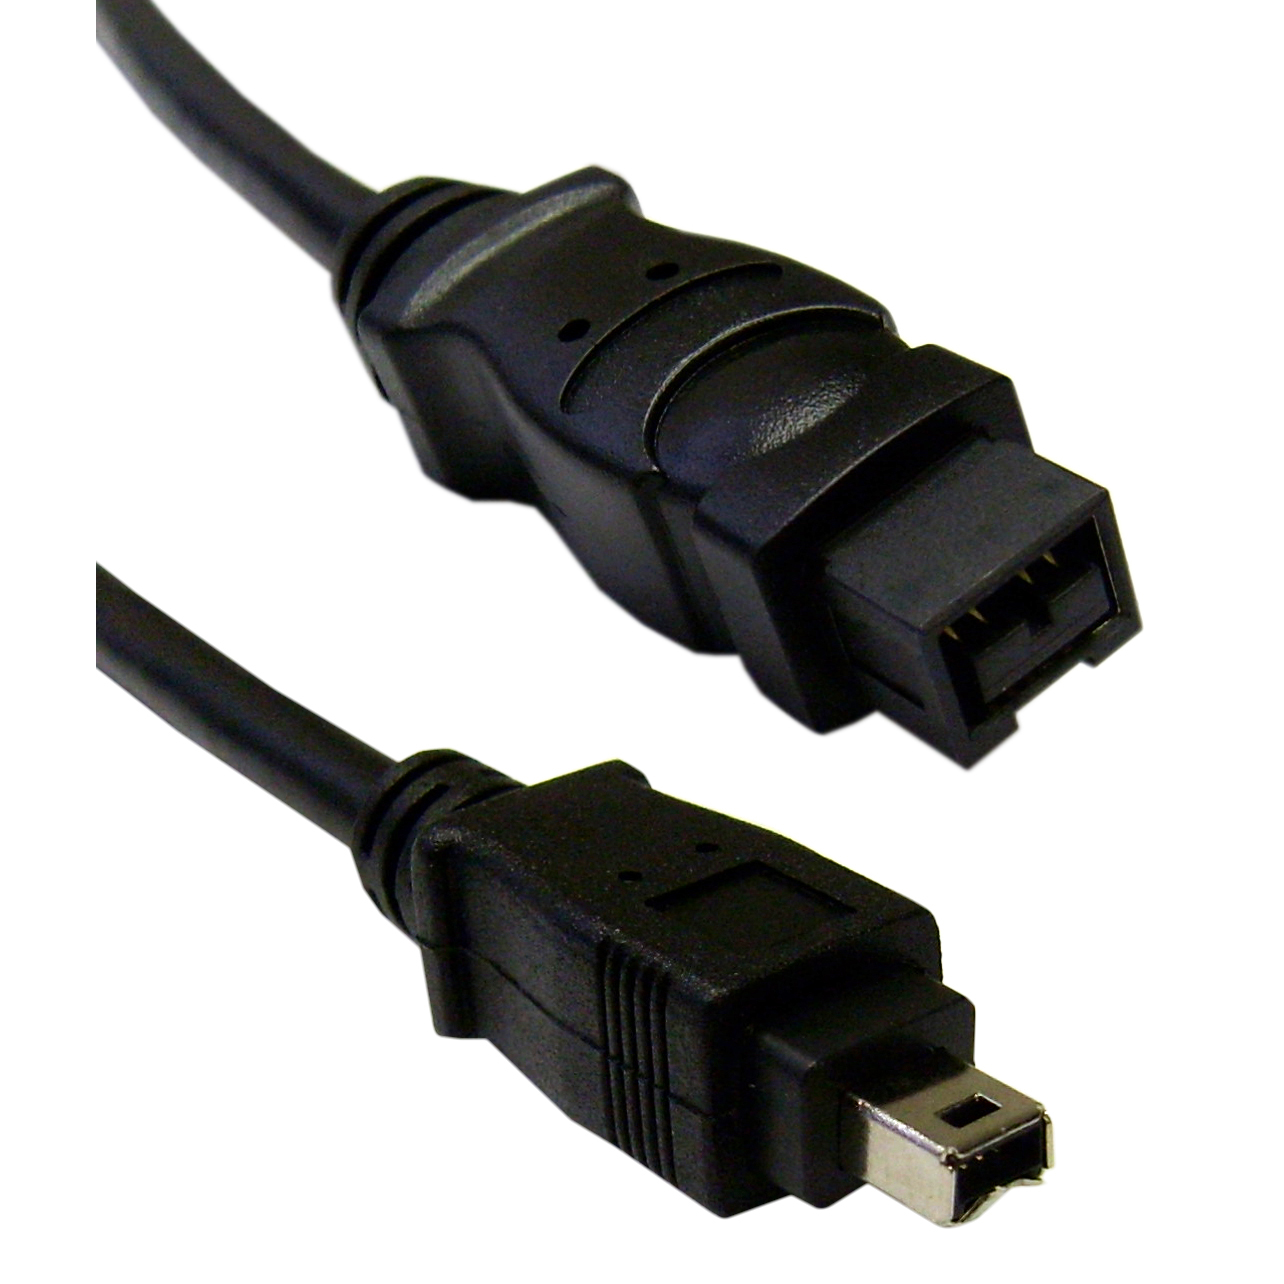 Fire-Wire-Cable-4-Pin-To-9-Pin